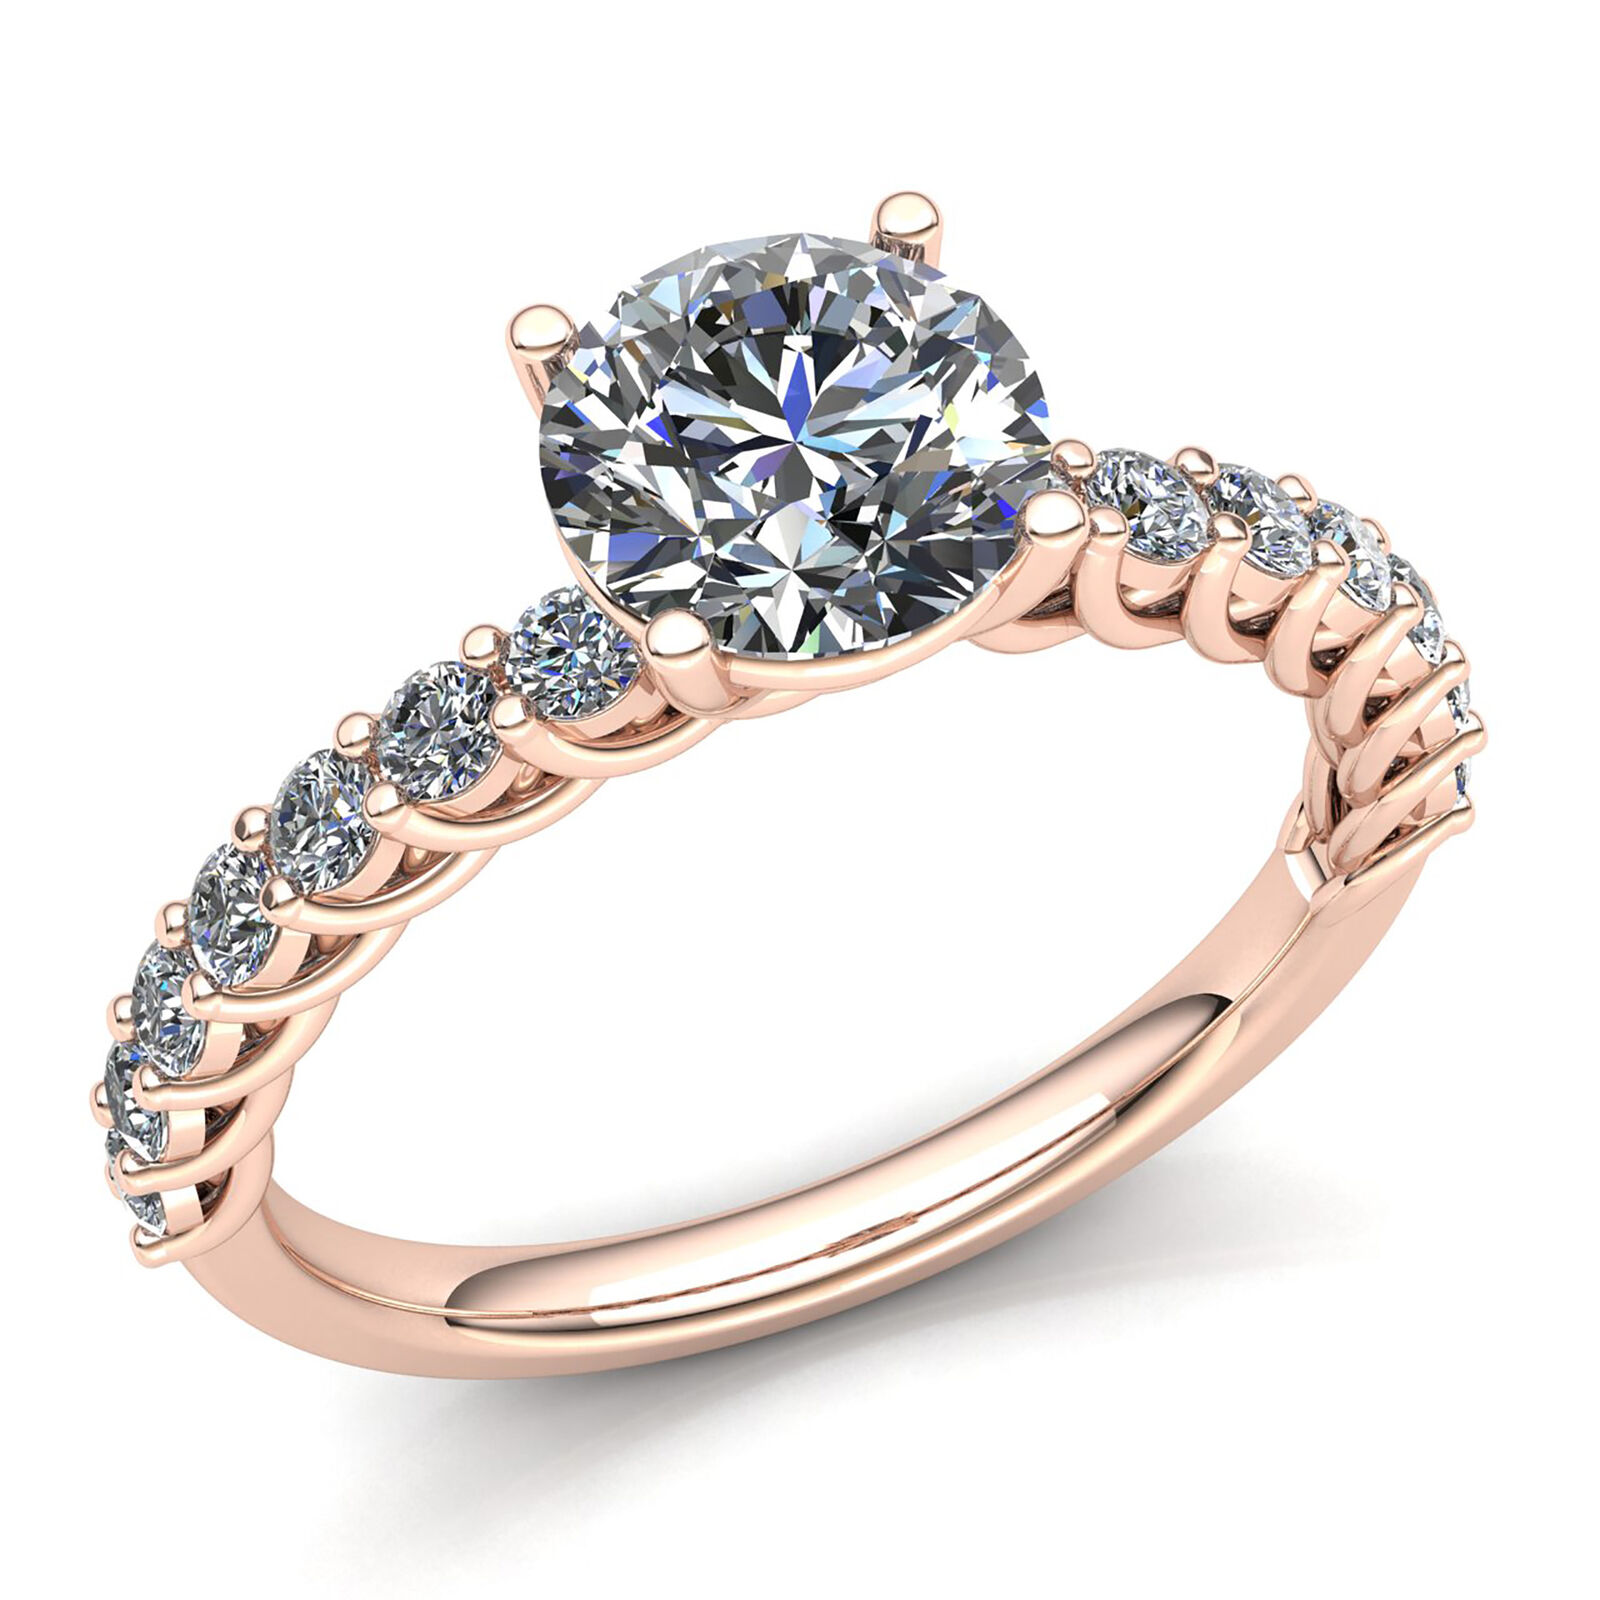 0.5ct Round Cut Diamond Ladies Accented Solitaire Engagement Ring 18K gold